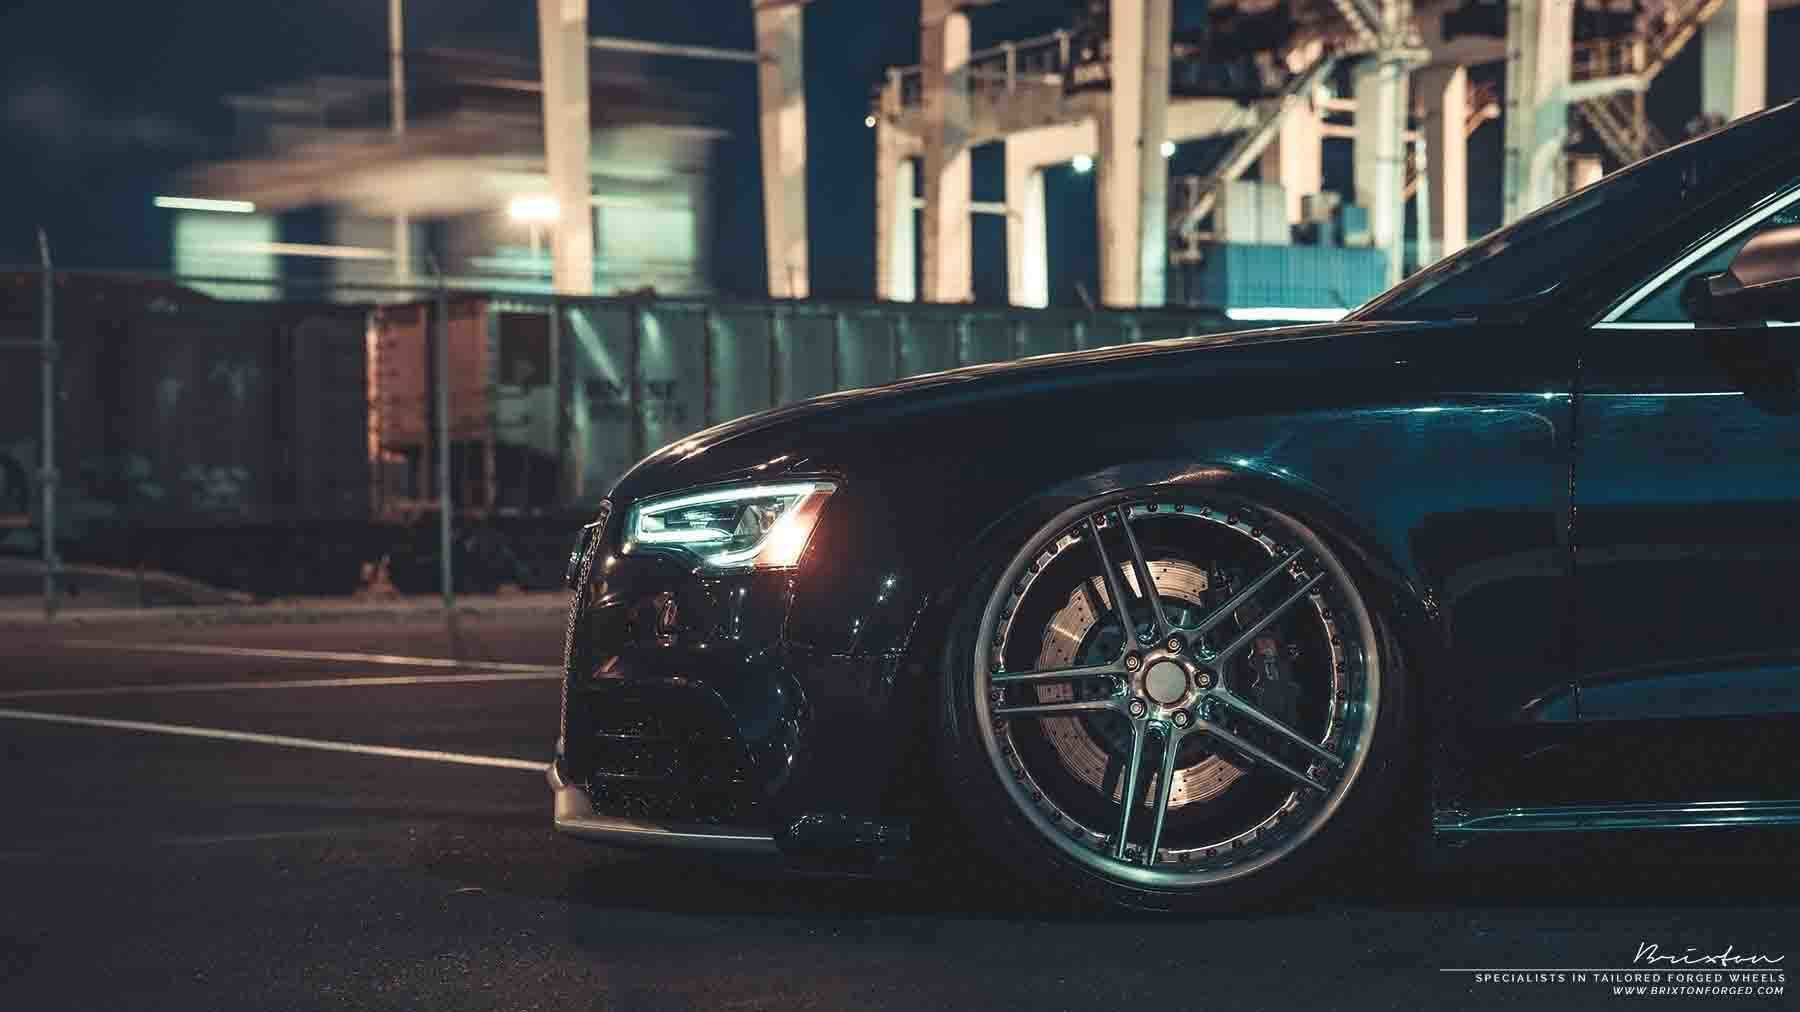 images-products-1-2203-232974491-brixton-forged-black-audi-rs5-brixton-m52-monaco-series-21-inch-3-piece-forged-wheels-brushed-po.jpg